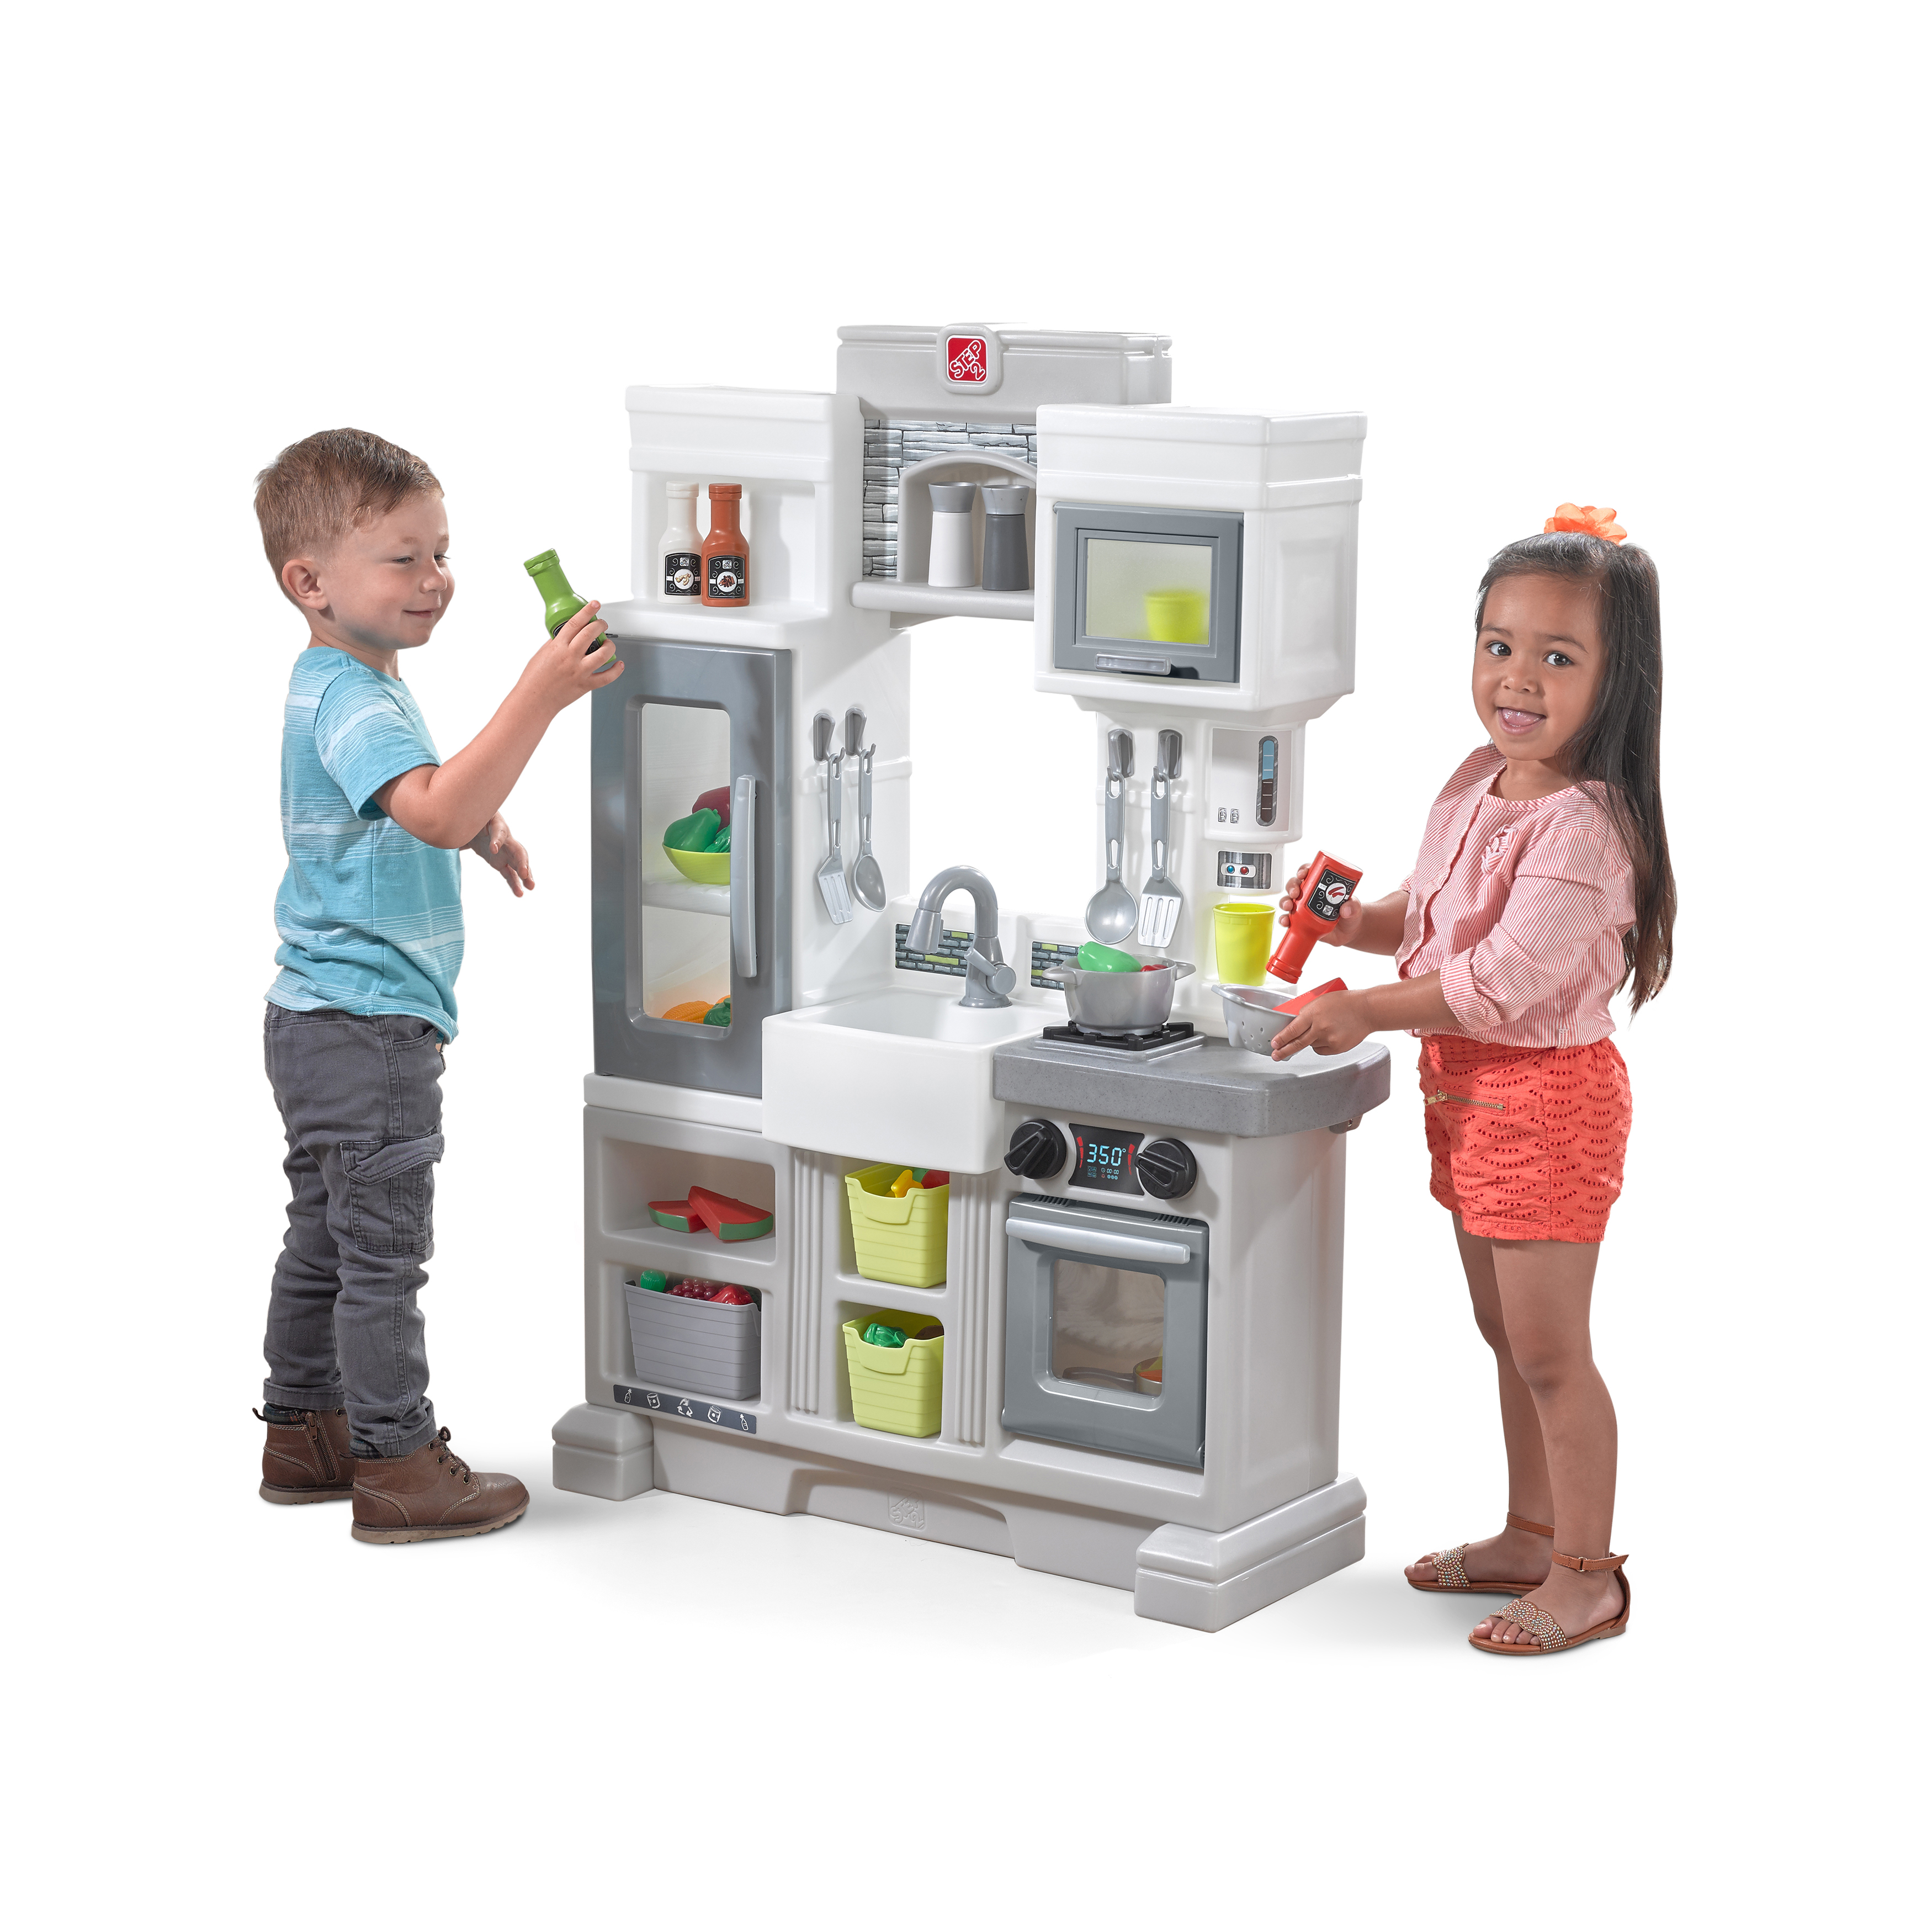 Step2 Downtown Delights Play Kitchen With 24 Piece Accessory Play Set Walmart Com Walmart Com